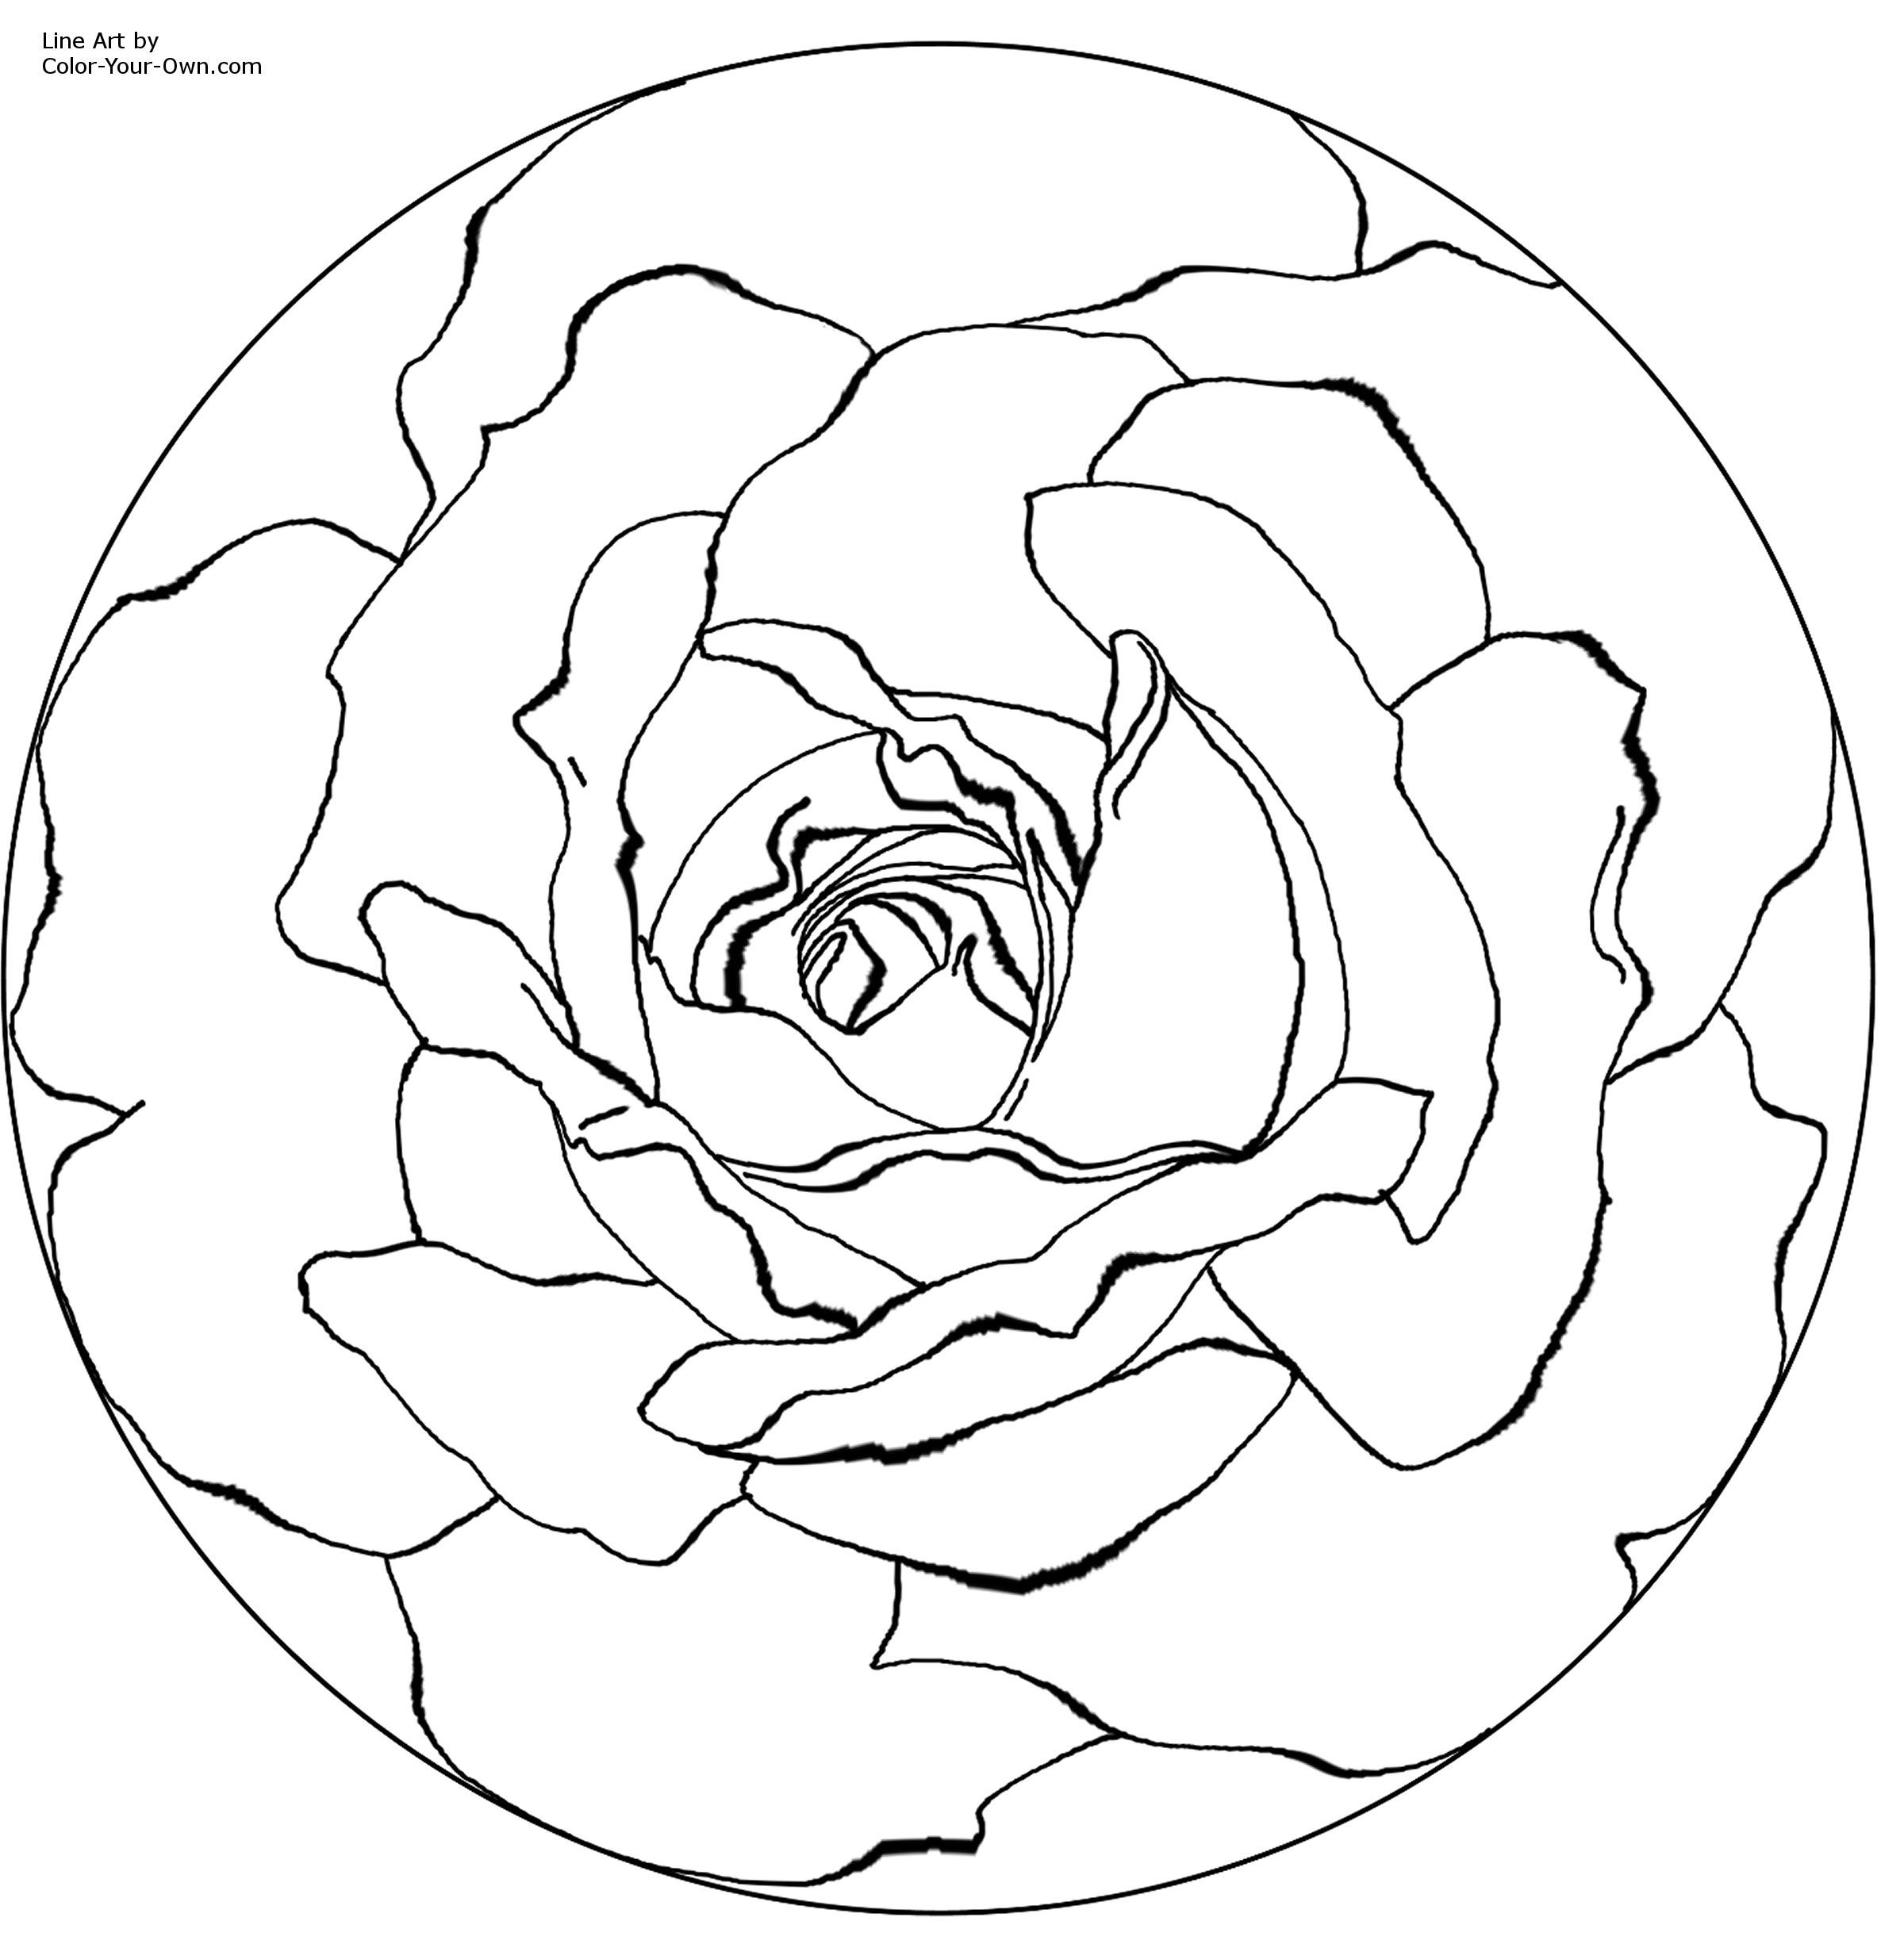 Printable coloring pages for adults flowers - Mandala Coloring Pages Free Coloring Pages 63 Pictures Photos Images